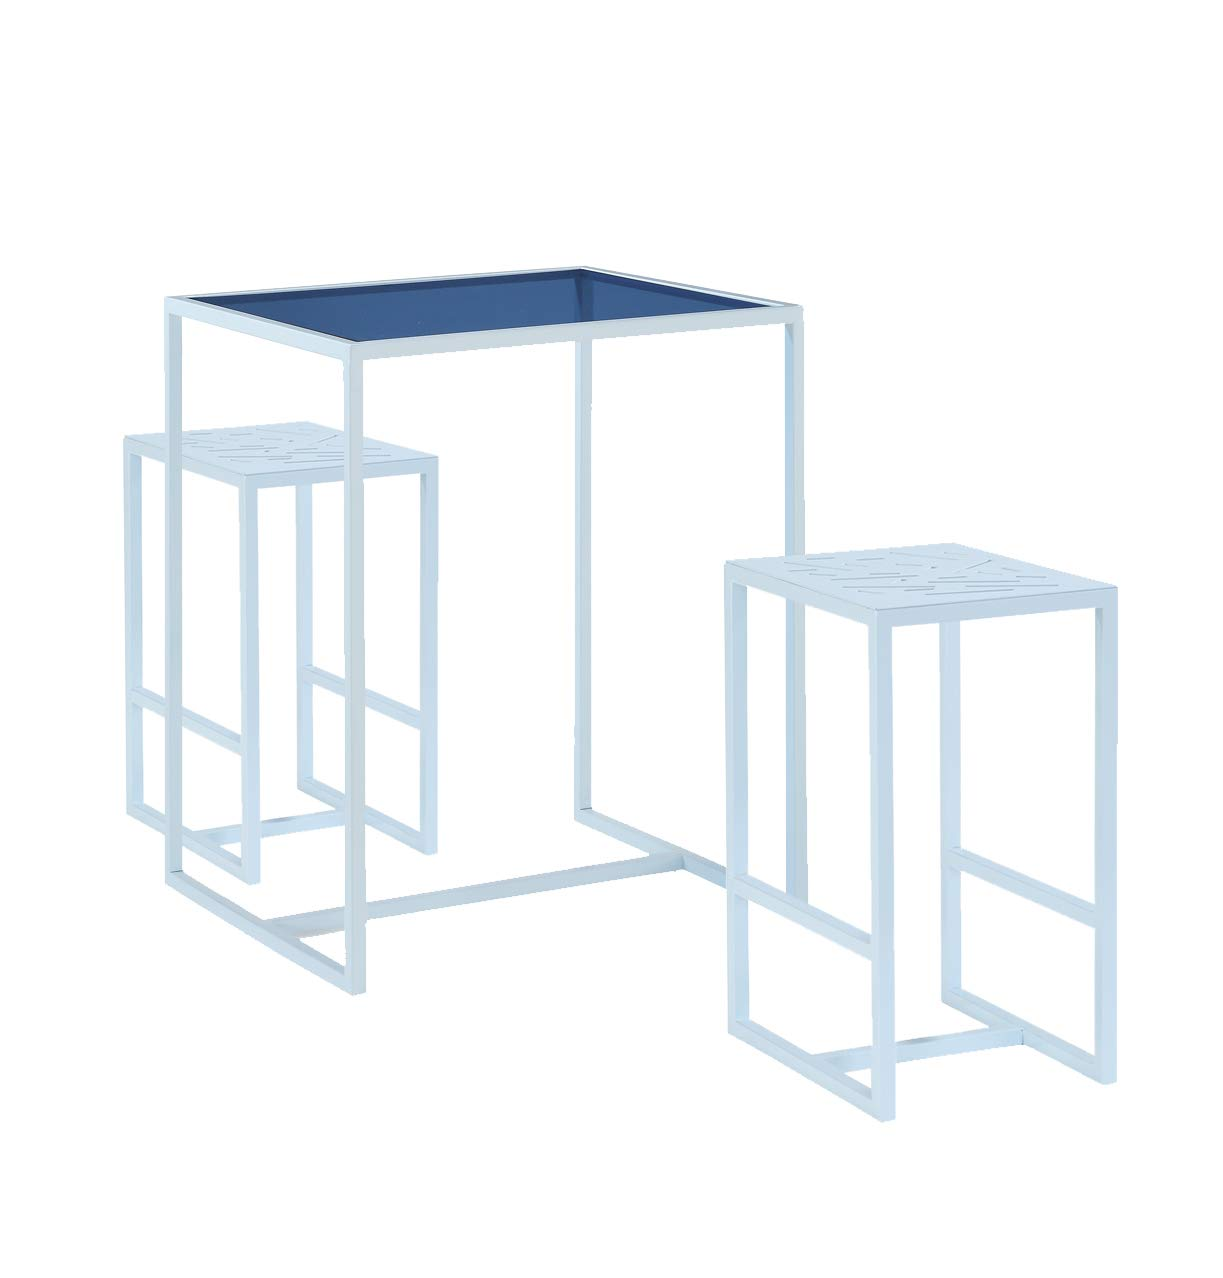 Now House by Jonathan Adler Vally Bistro Dining Table Set, Blue